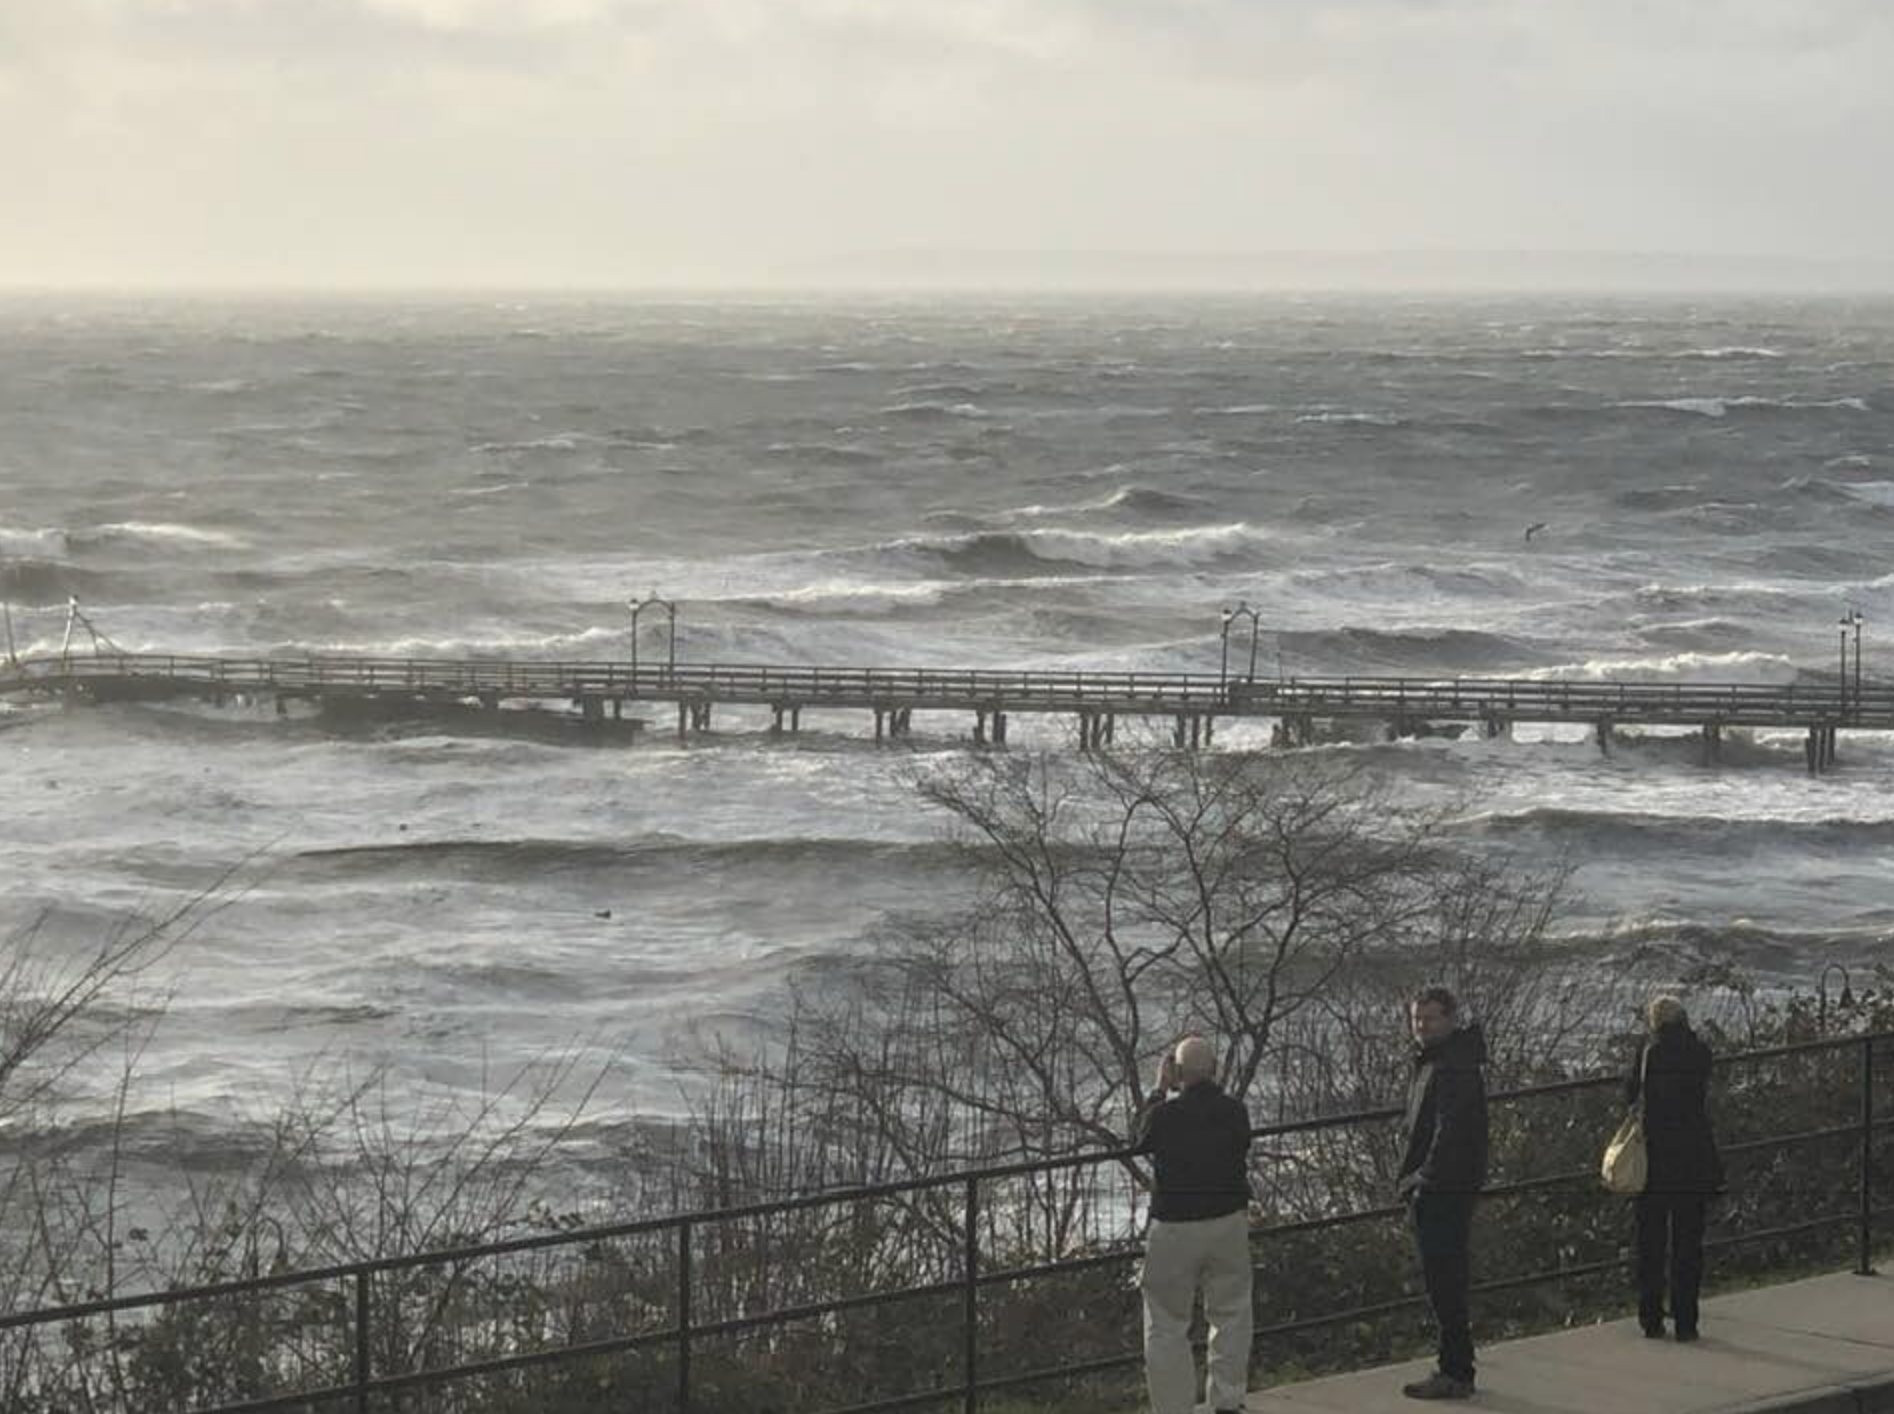 City of White Rock thankful for $400,000 donation from Friends of the Pier